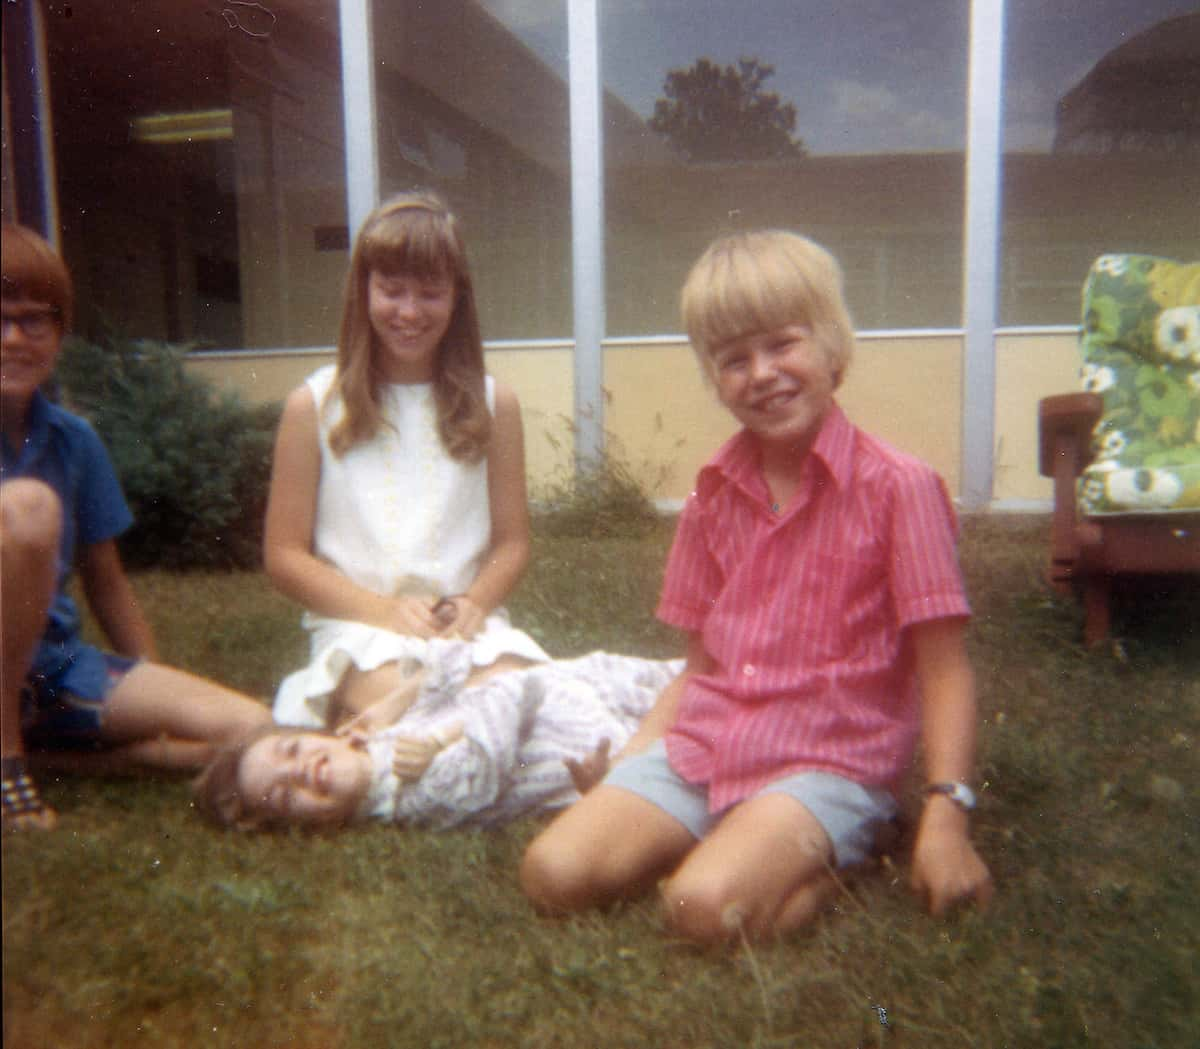 The four Smith siblings, all smiling, sit in the grass outside Gayle's residential facility. Gayle is lying on a blanket in the grass.